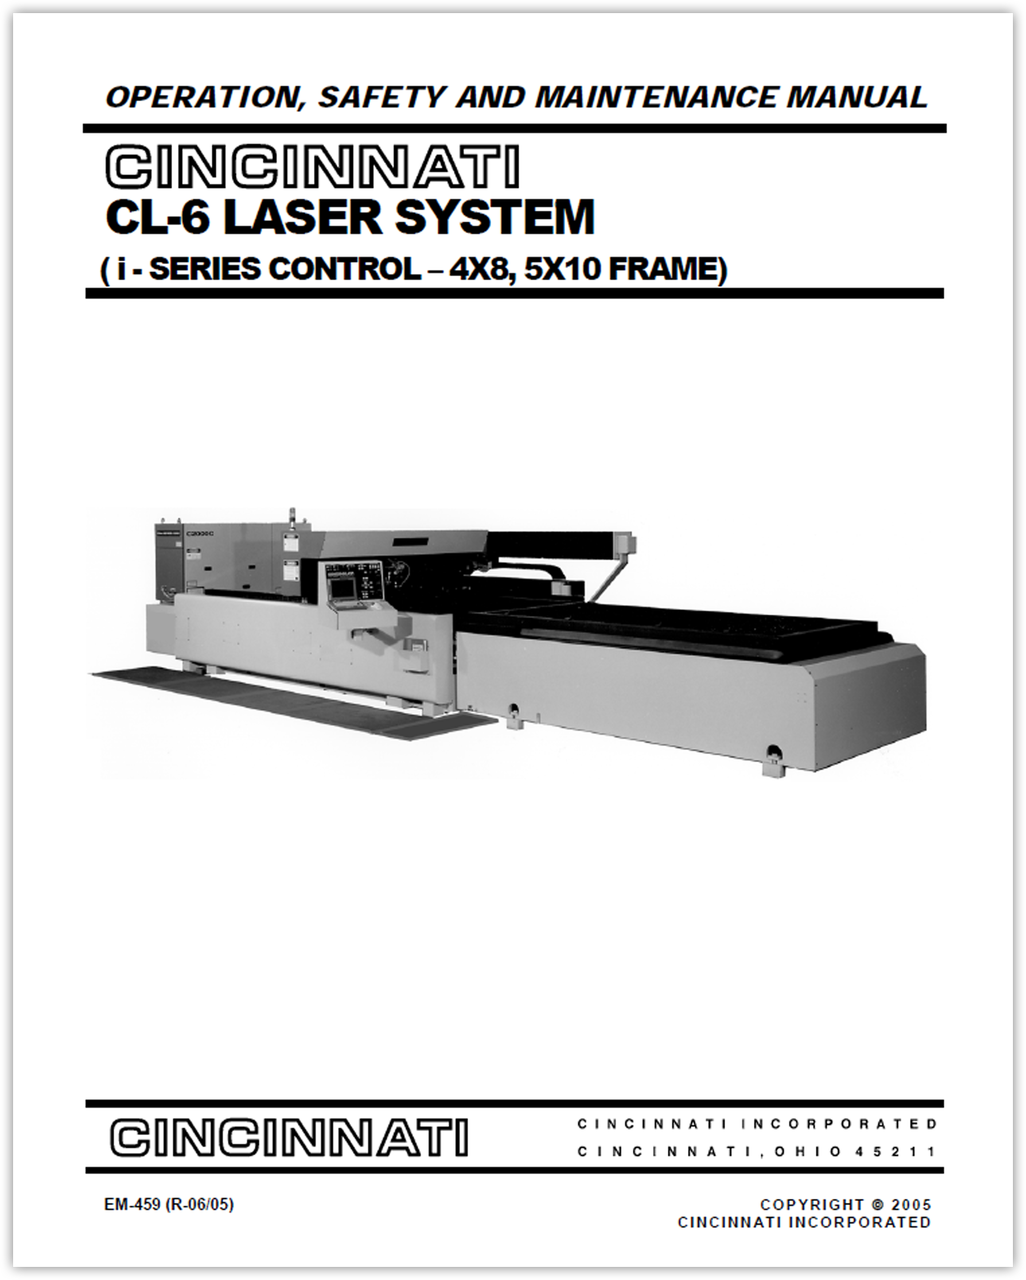 EM-459 (R-06-05) CL-6 LASER SYSTEM (i - SERIES CONTROL - 4X8, 5X10 FRAME) - OPERATION, SAFETY AND MAINTENANCE MANUAL